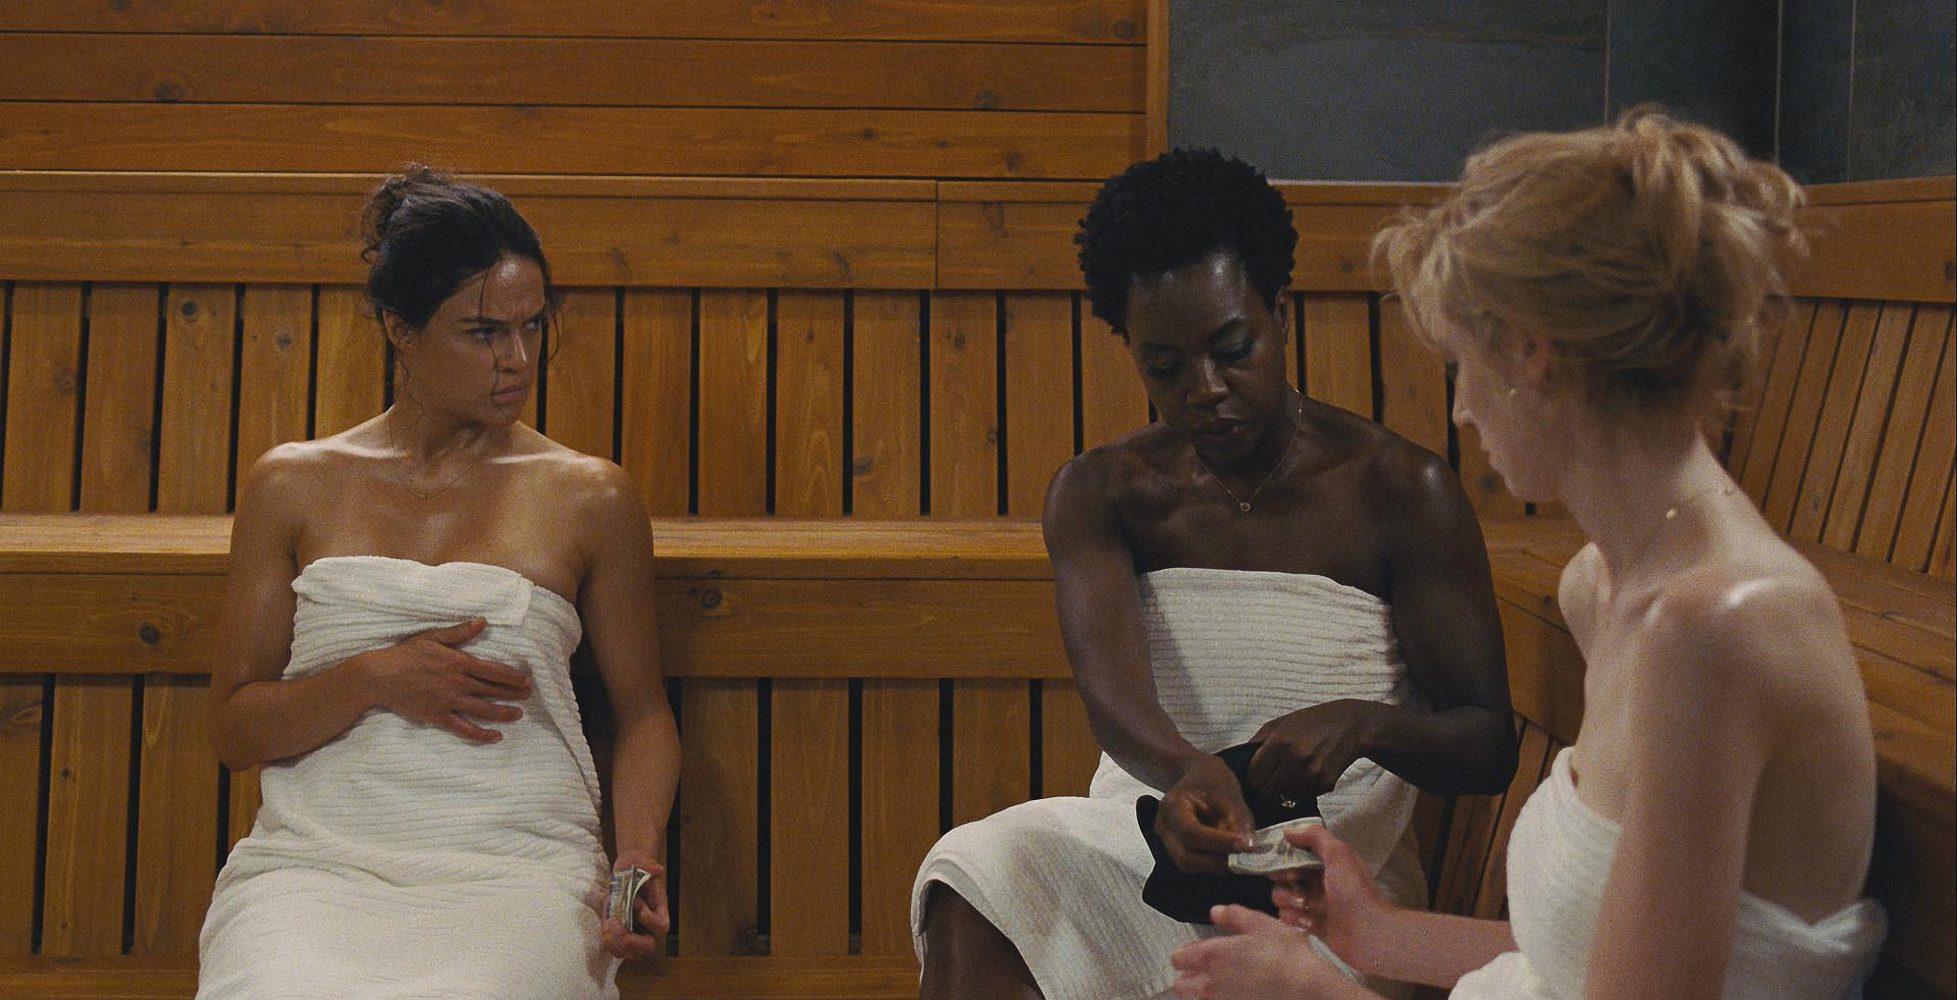 TRAILER: Michelle Rodriguez & Viola Davis Star in Action-Packed Heist Drama 'Widows'